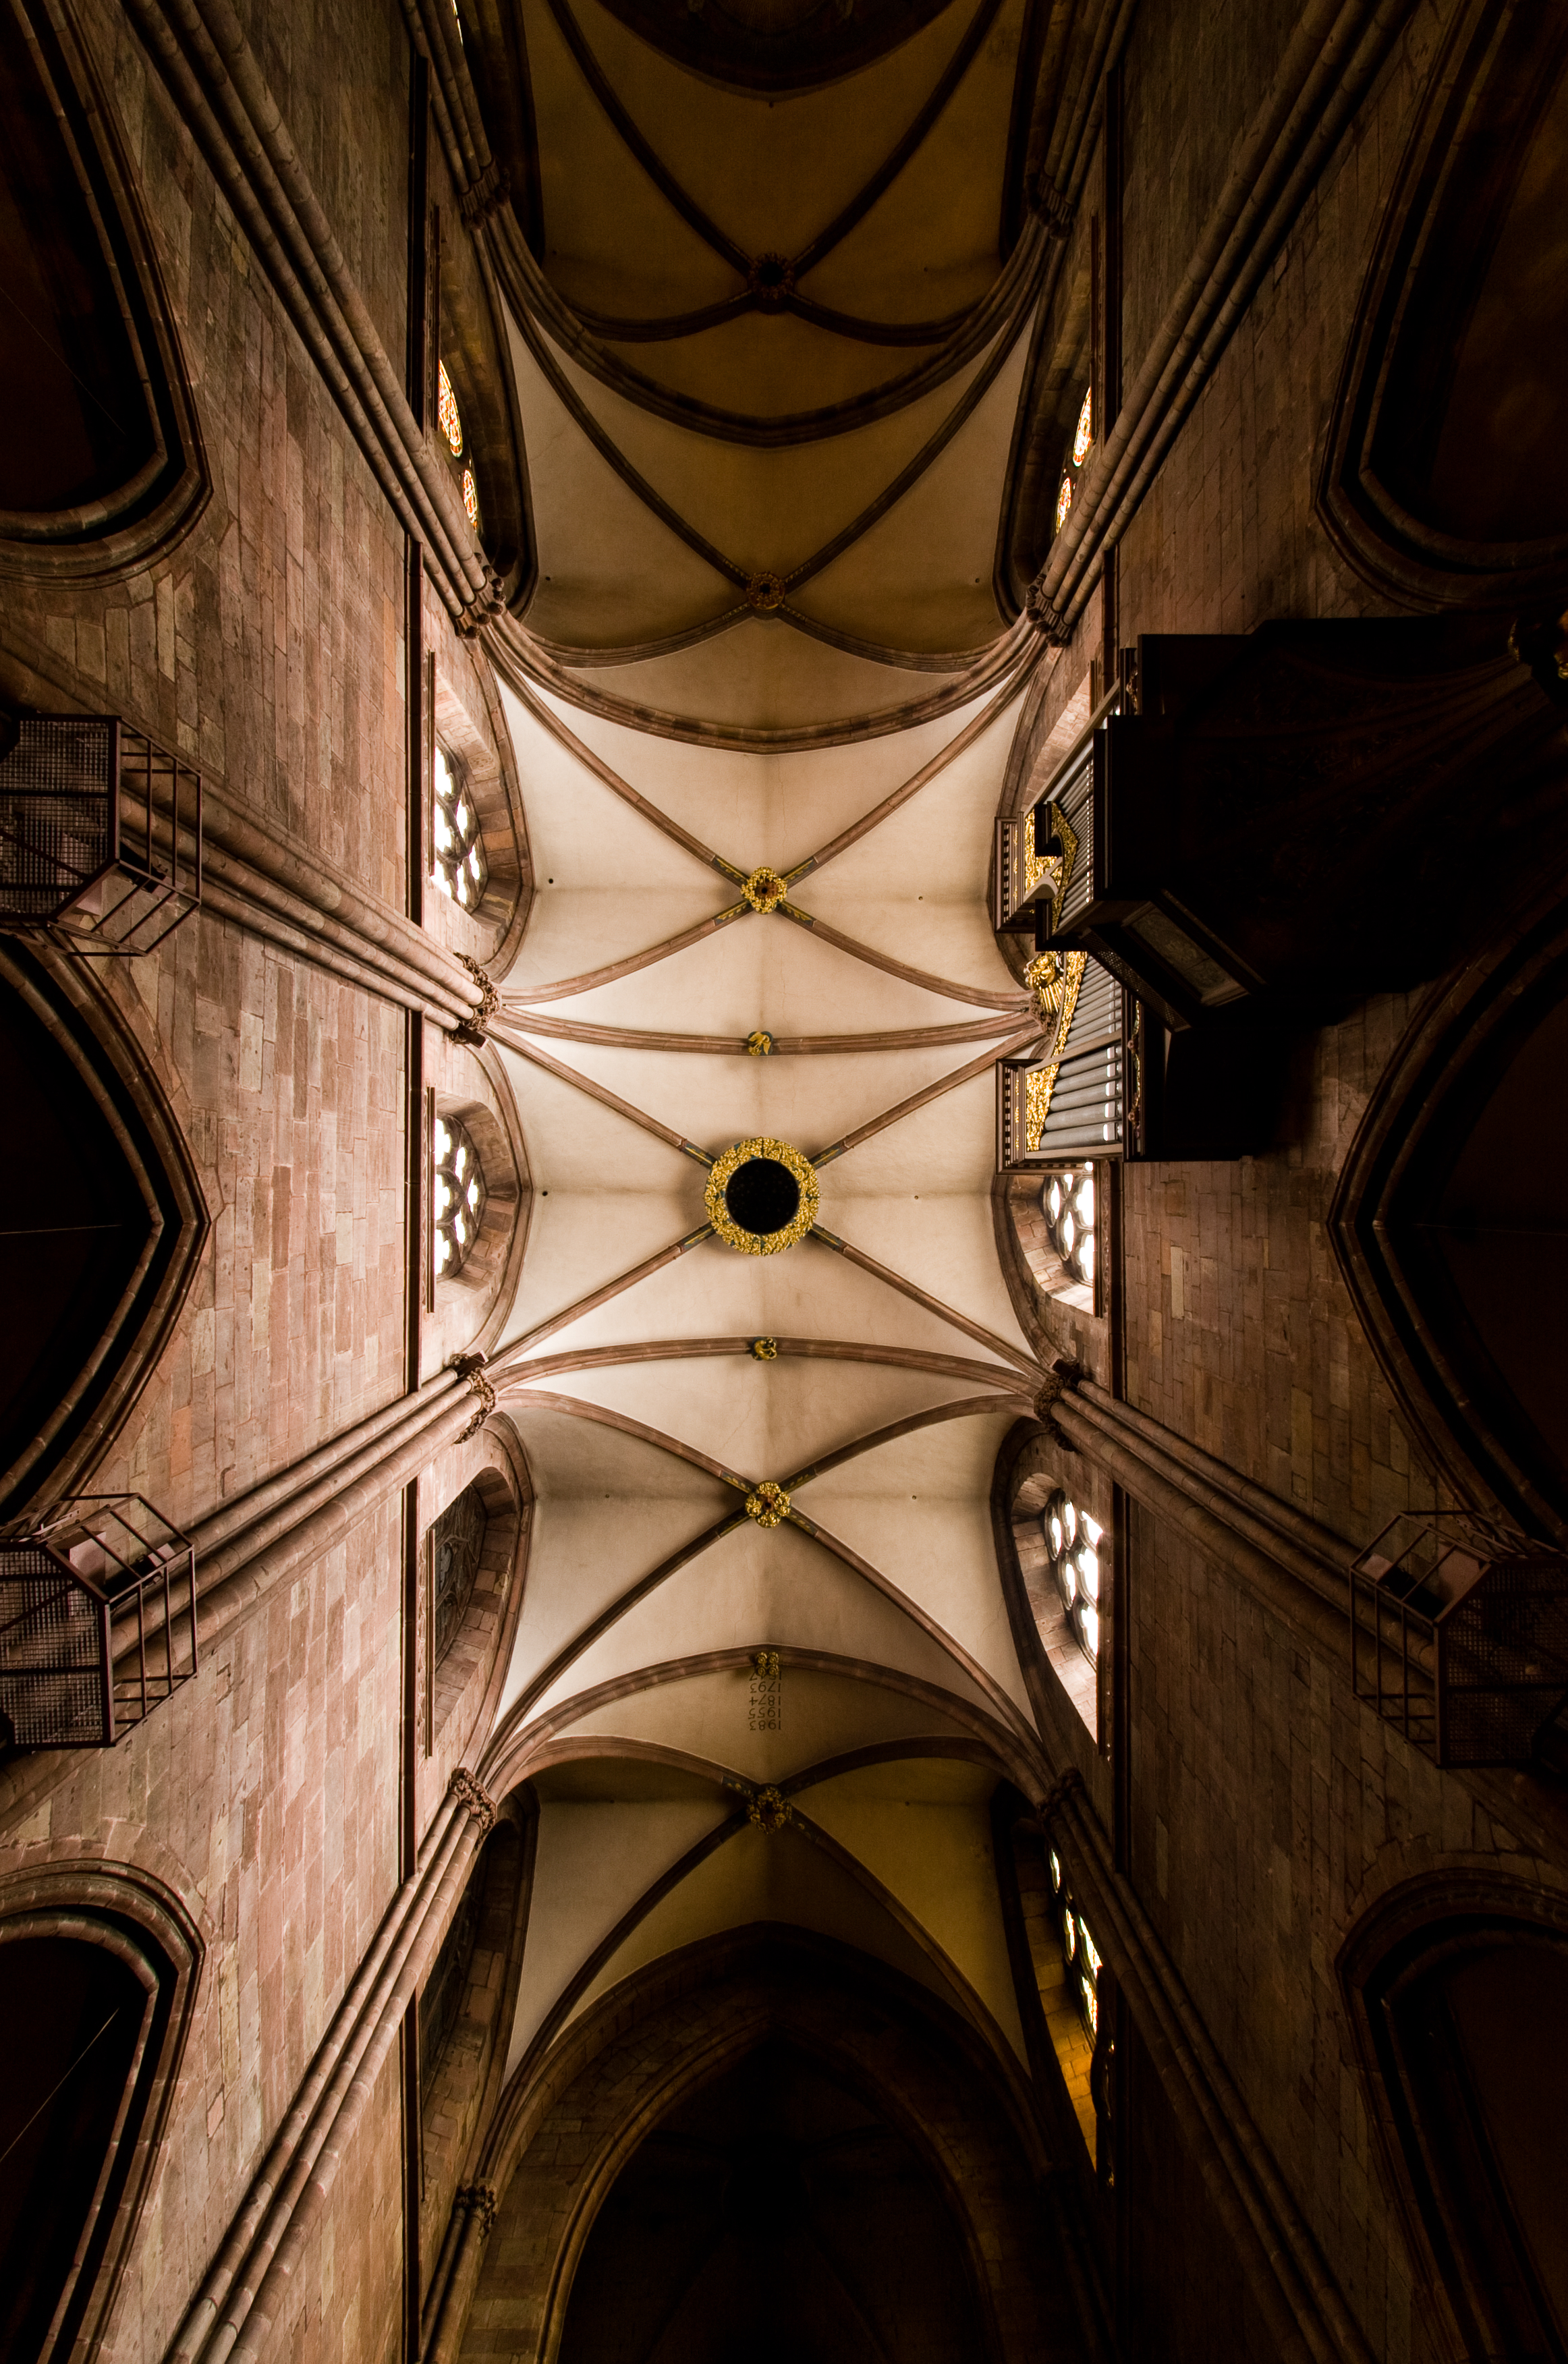 〖 cathedral ceiling 〗